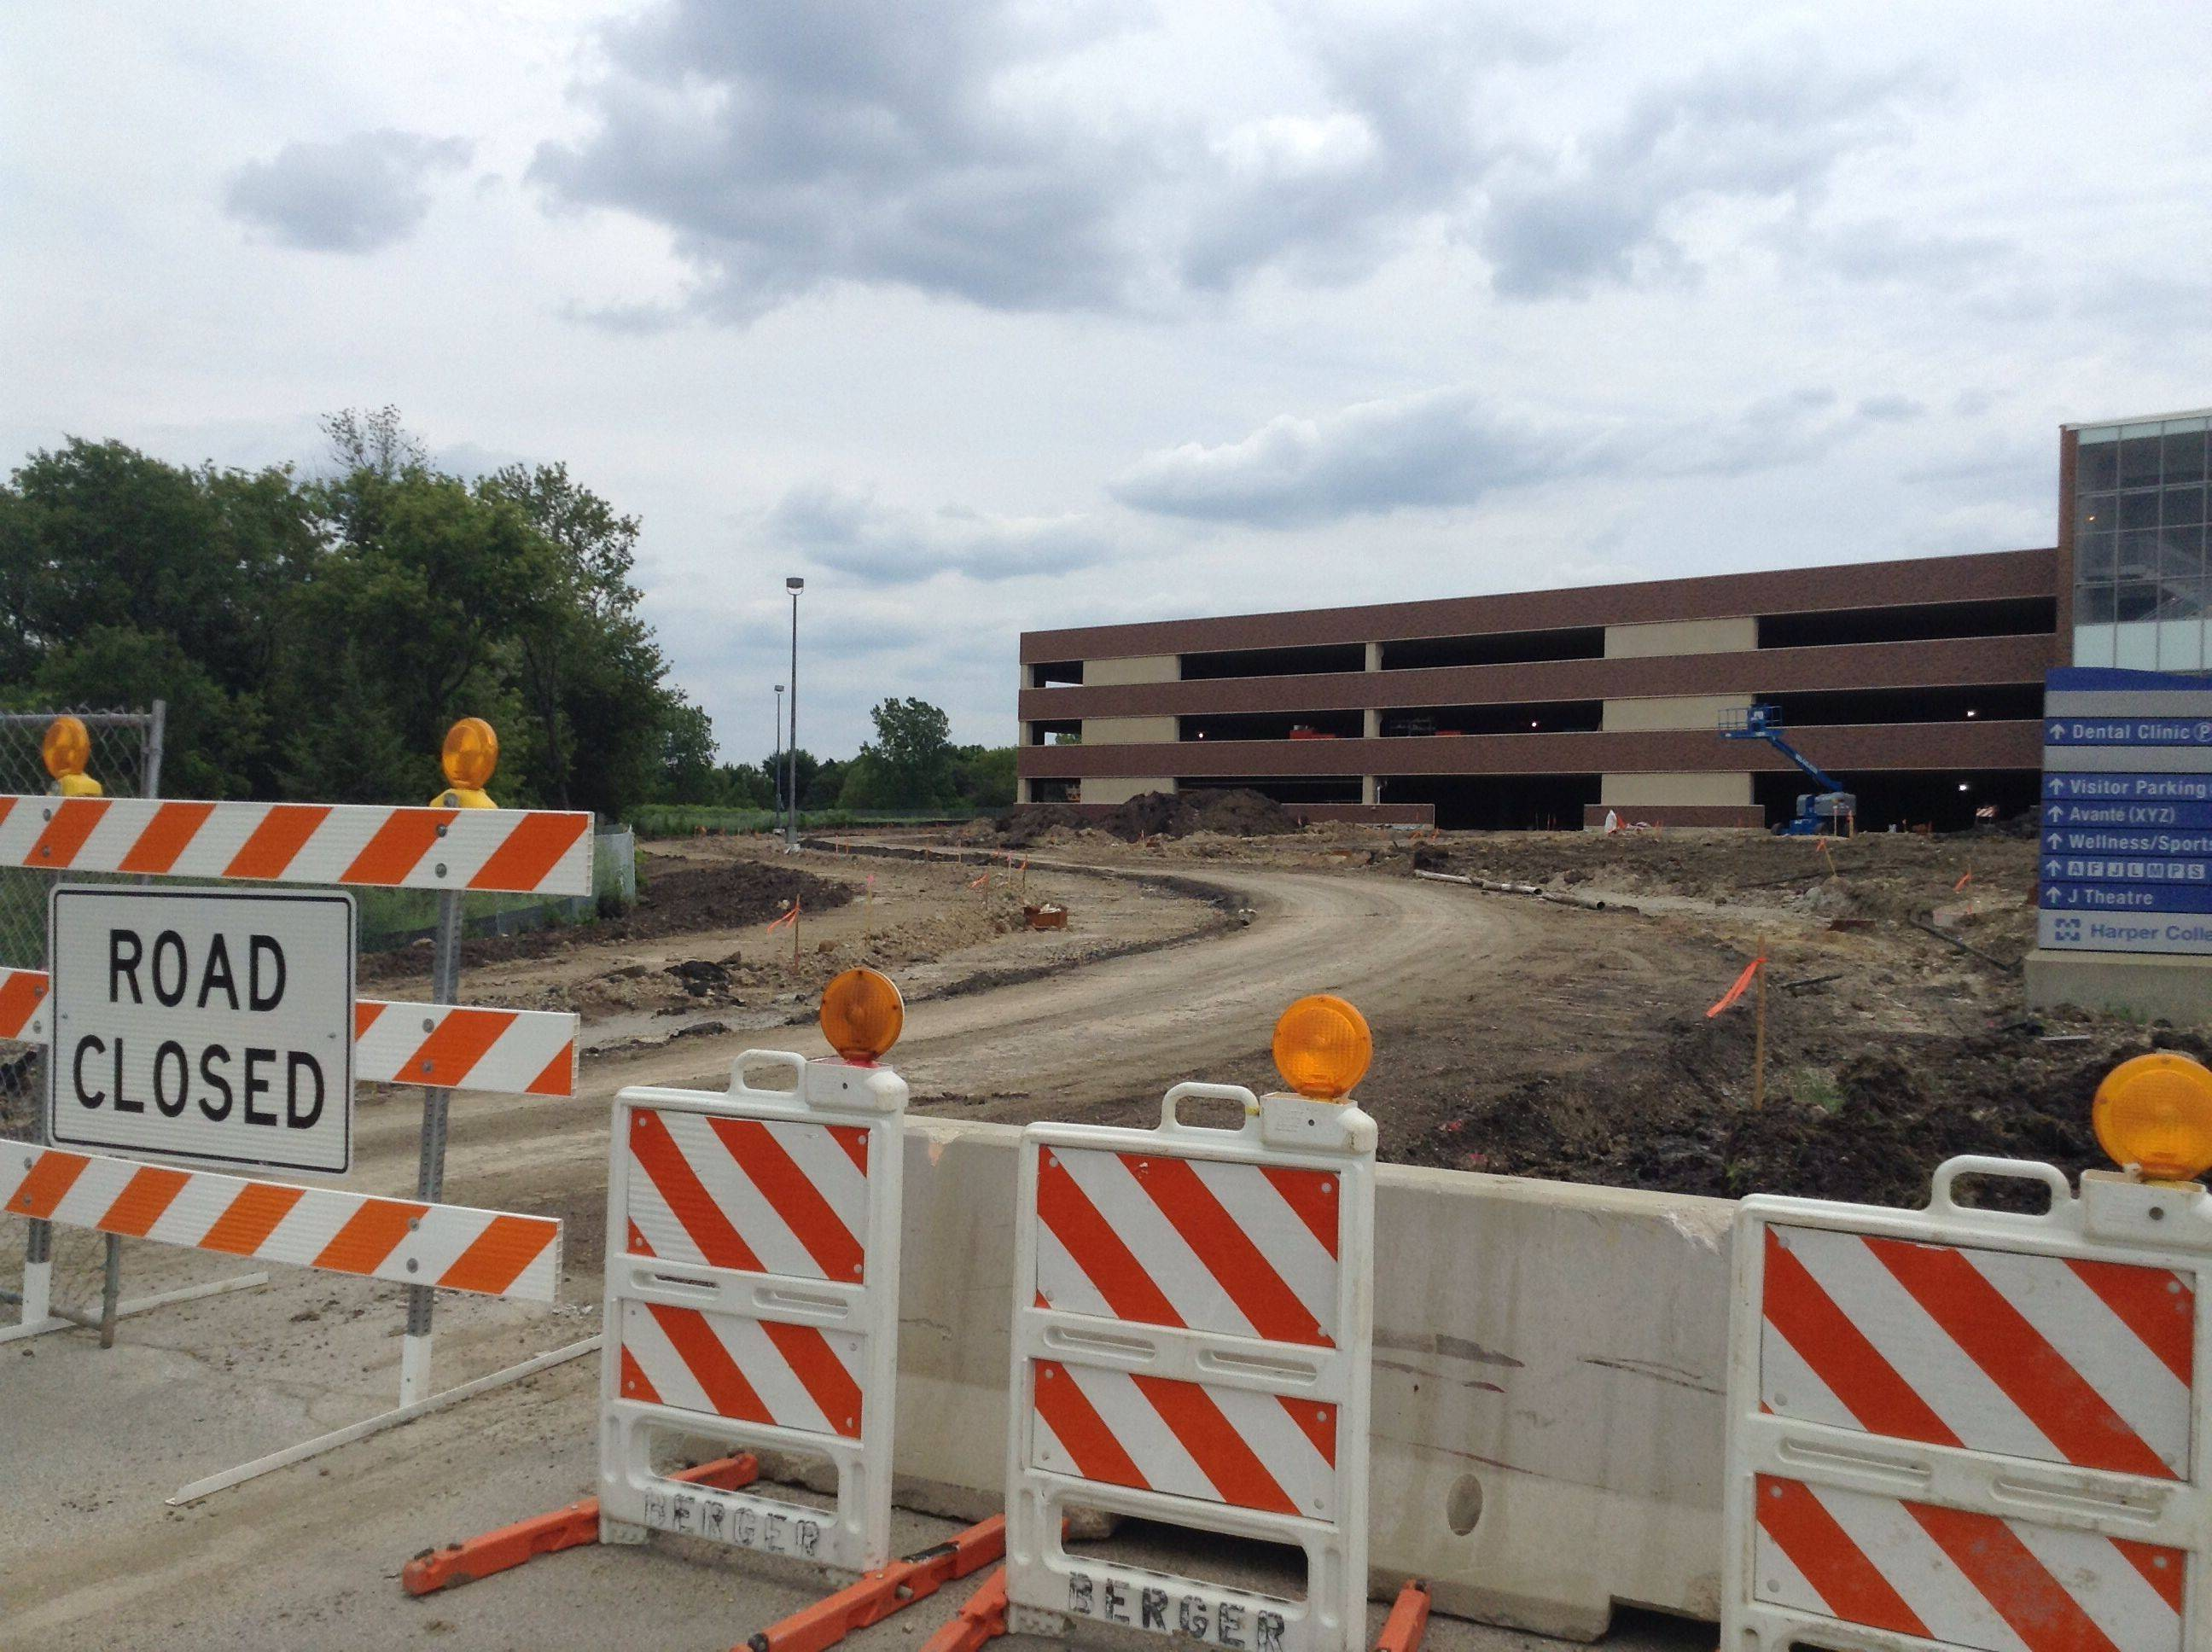 Harper College will charge students and faculty to park inside a new $14 million parking garage on the east side of the Palatine campus. The first two levels of the four-story structure are scheduled to open Aug. 25, with the top floors expected to be ready in mid-October.